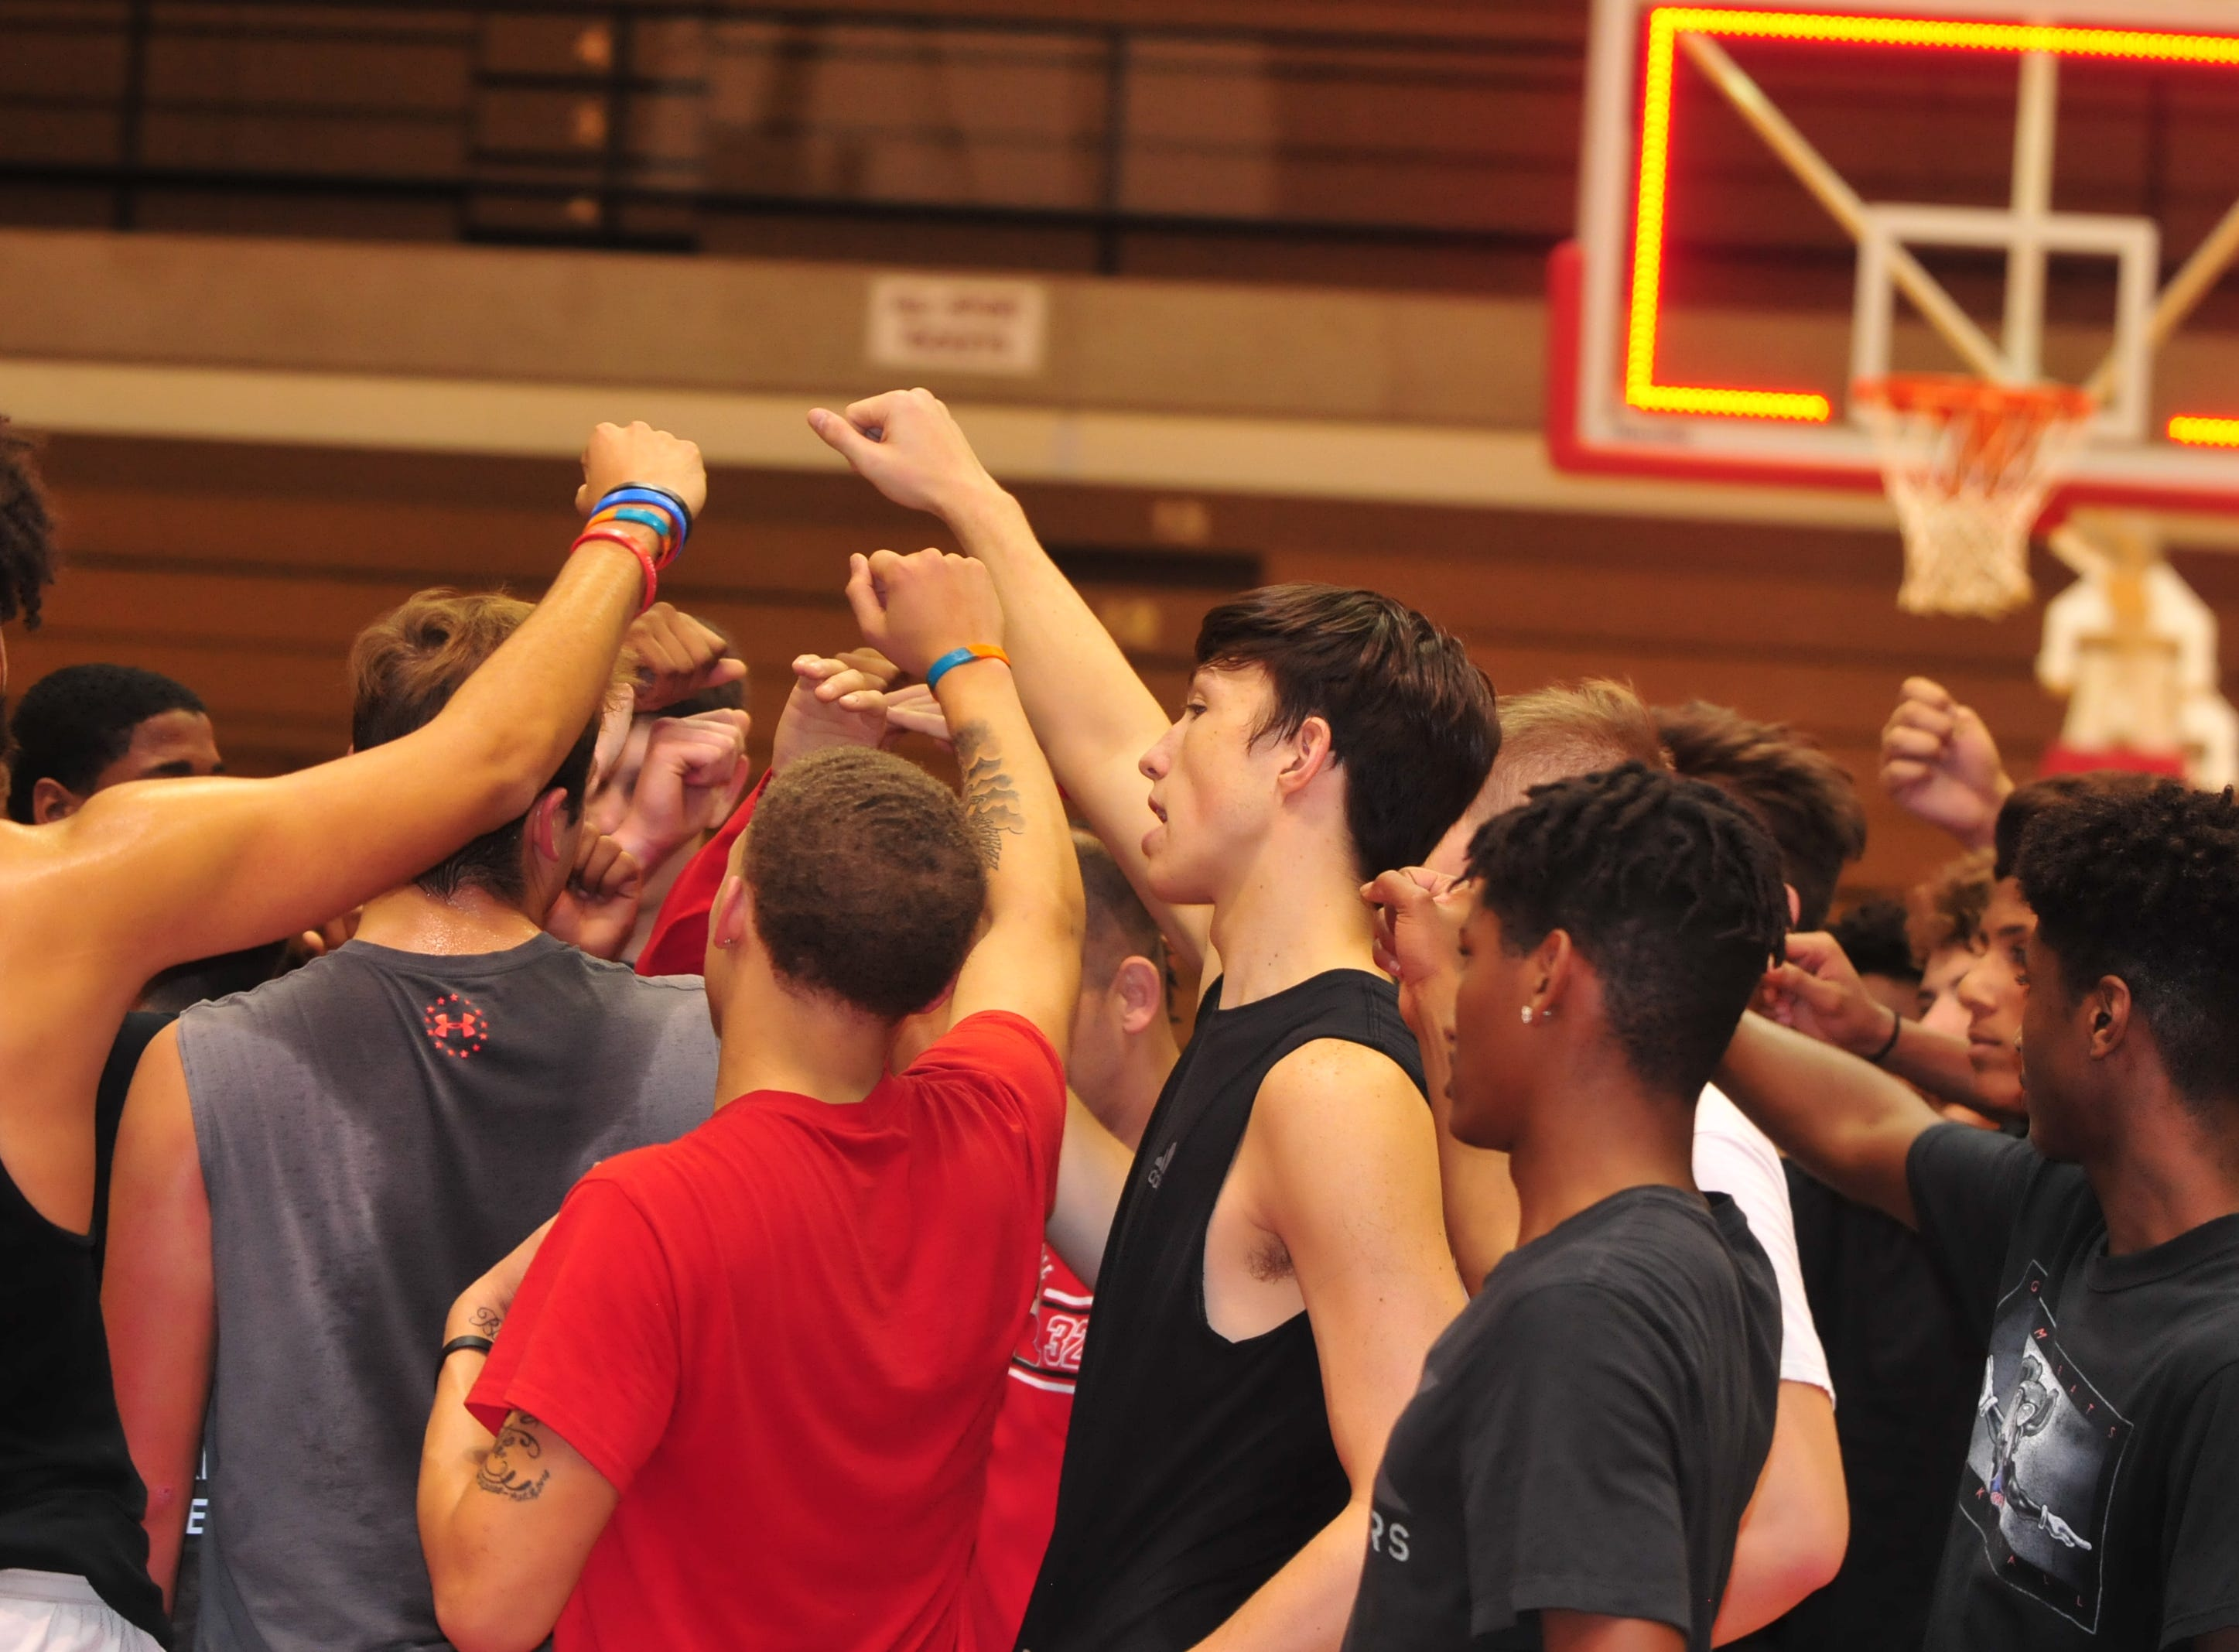 Richmond High School boys basketball players during boys basketball practice Monday, Nov. 5, 2018 at the Richmond High School's Tiernan Center.